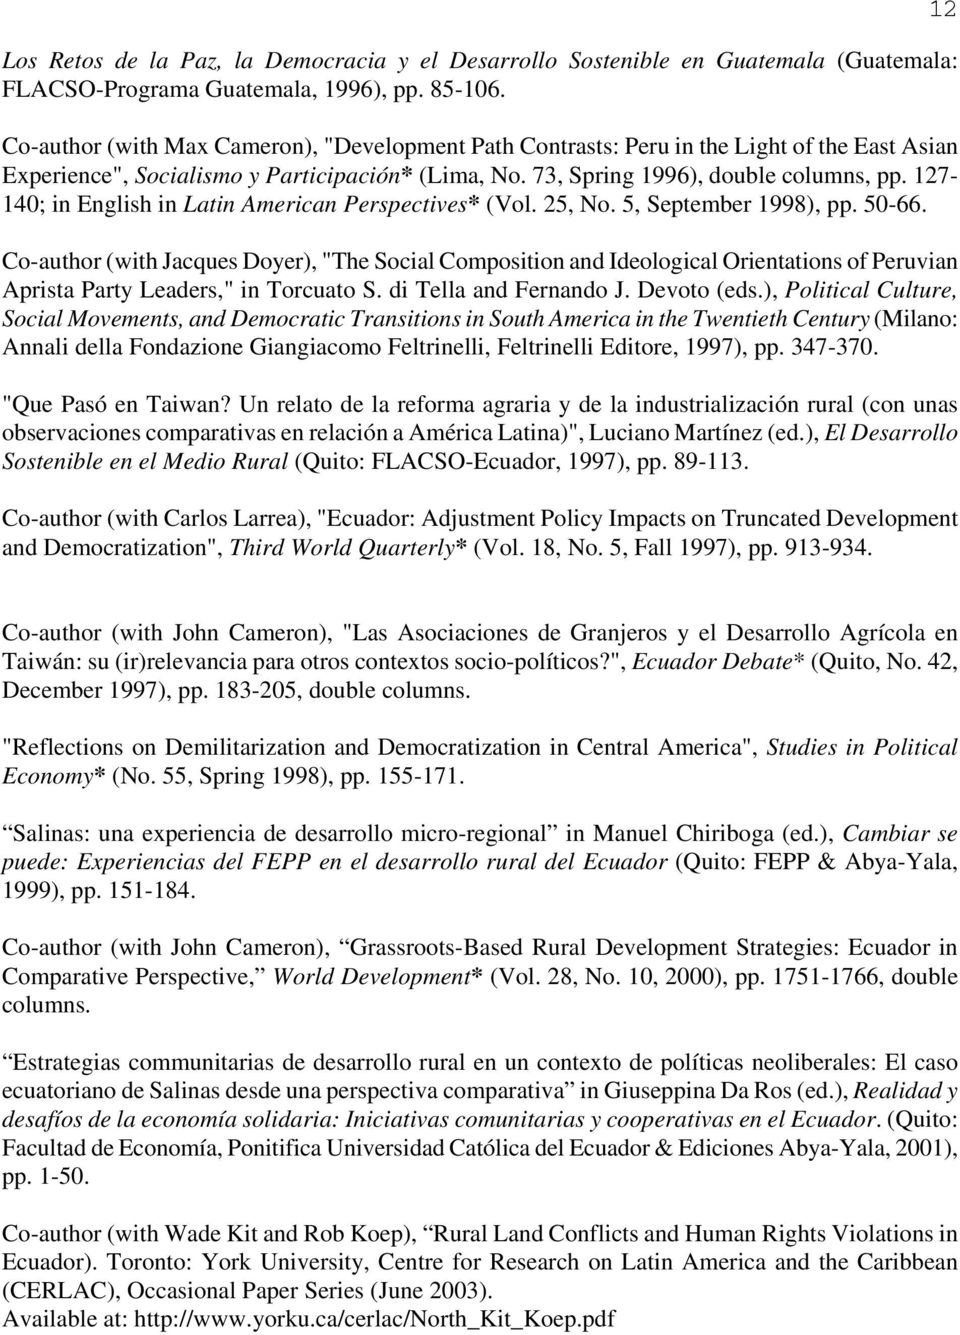 127-140; in English in Latin American Perspectives* (Vol. 25, No. 5, September 1998), pp. 50-66.